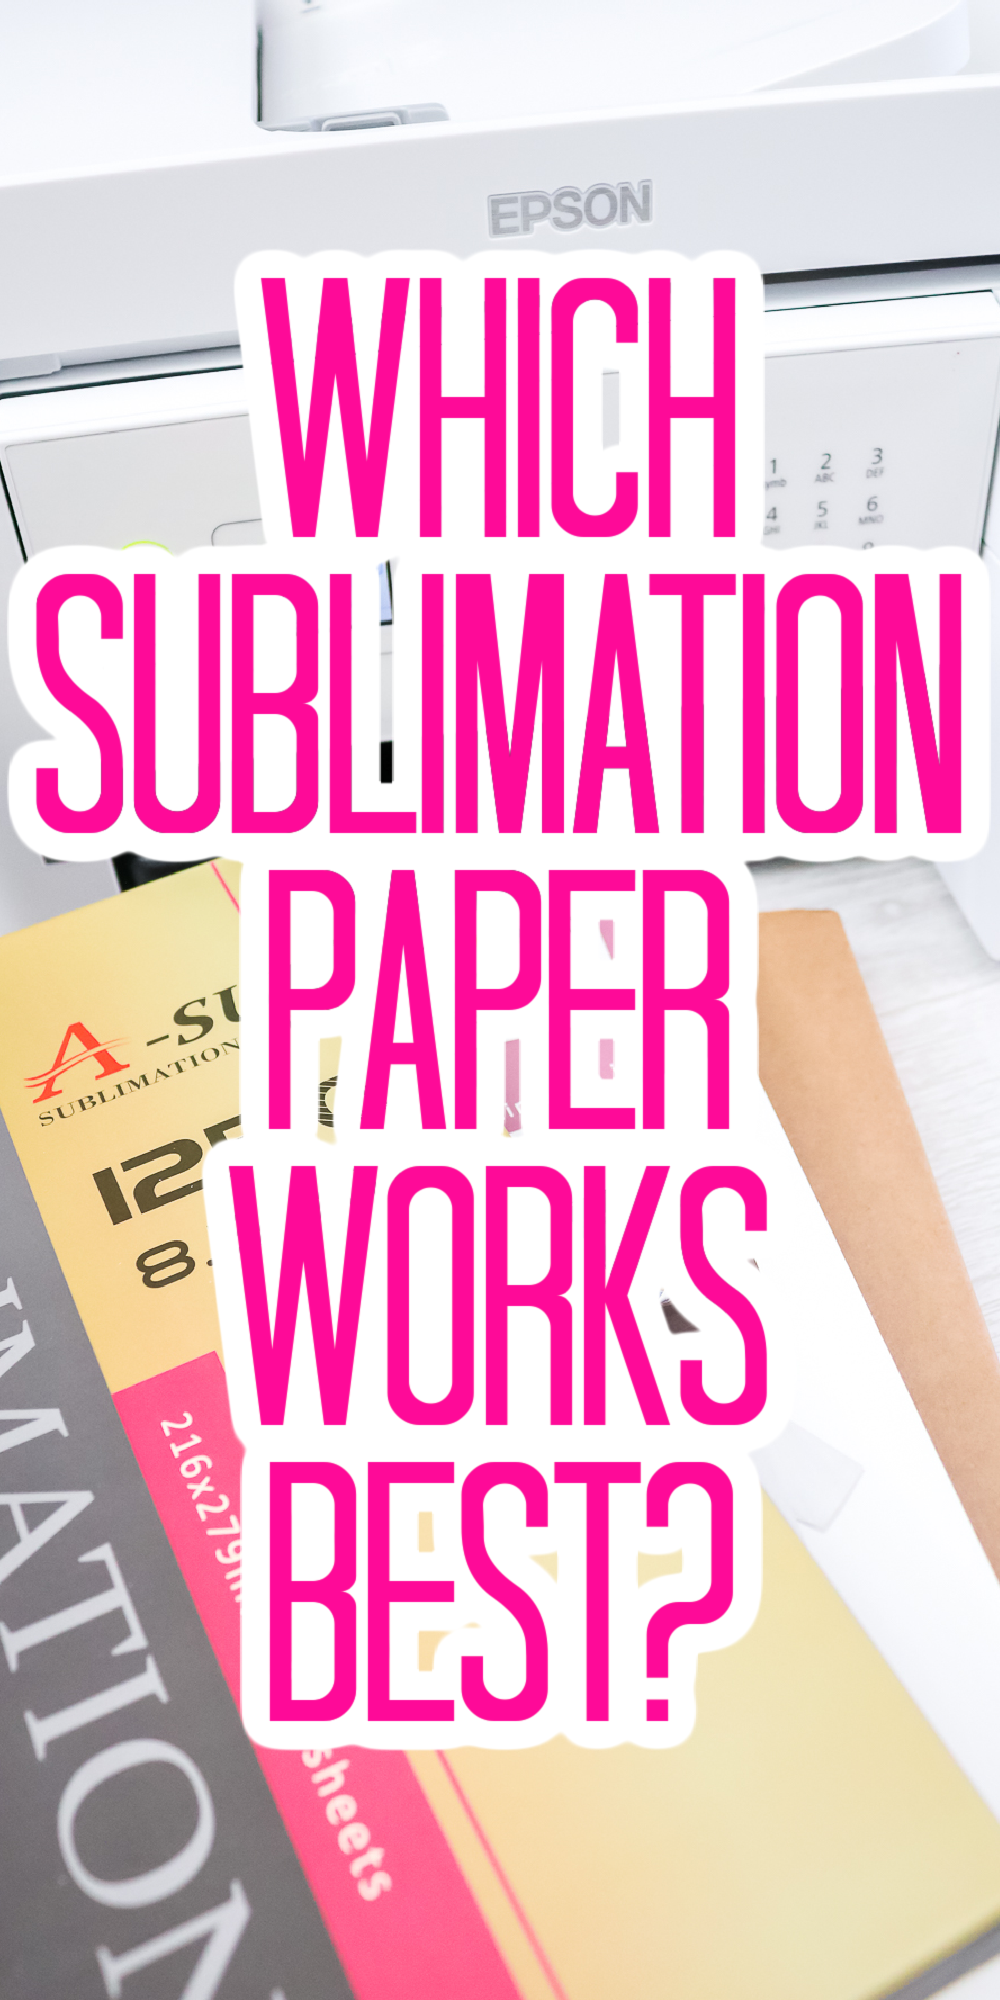 what sublimation paper works best